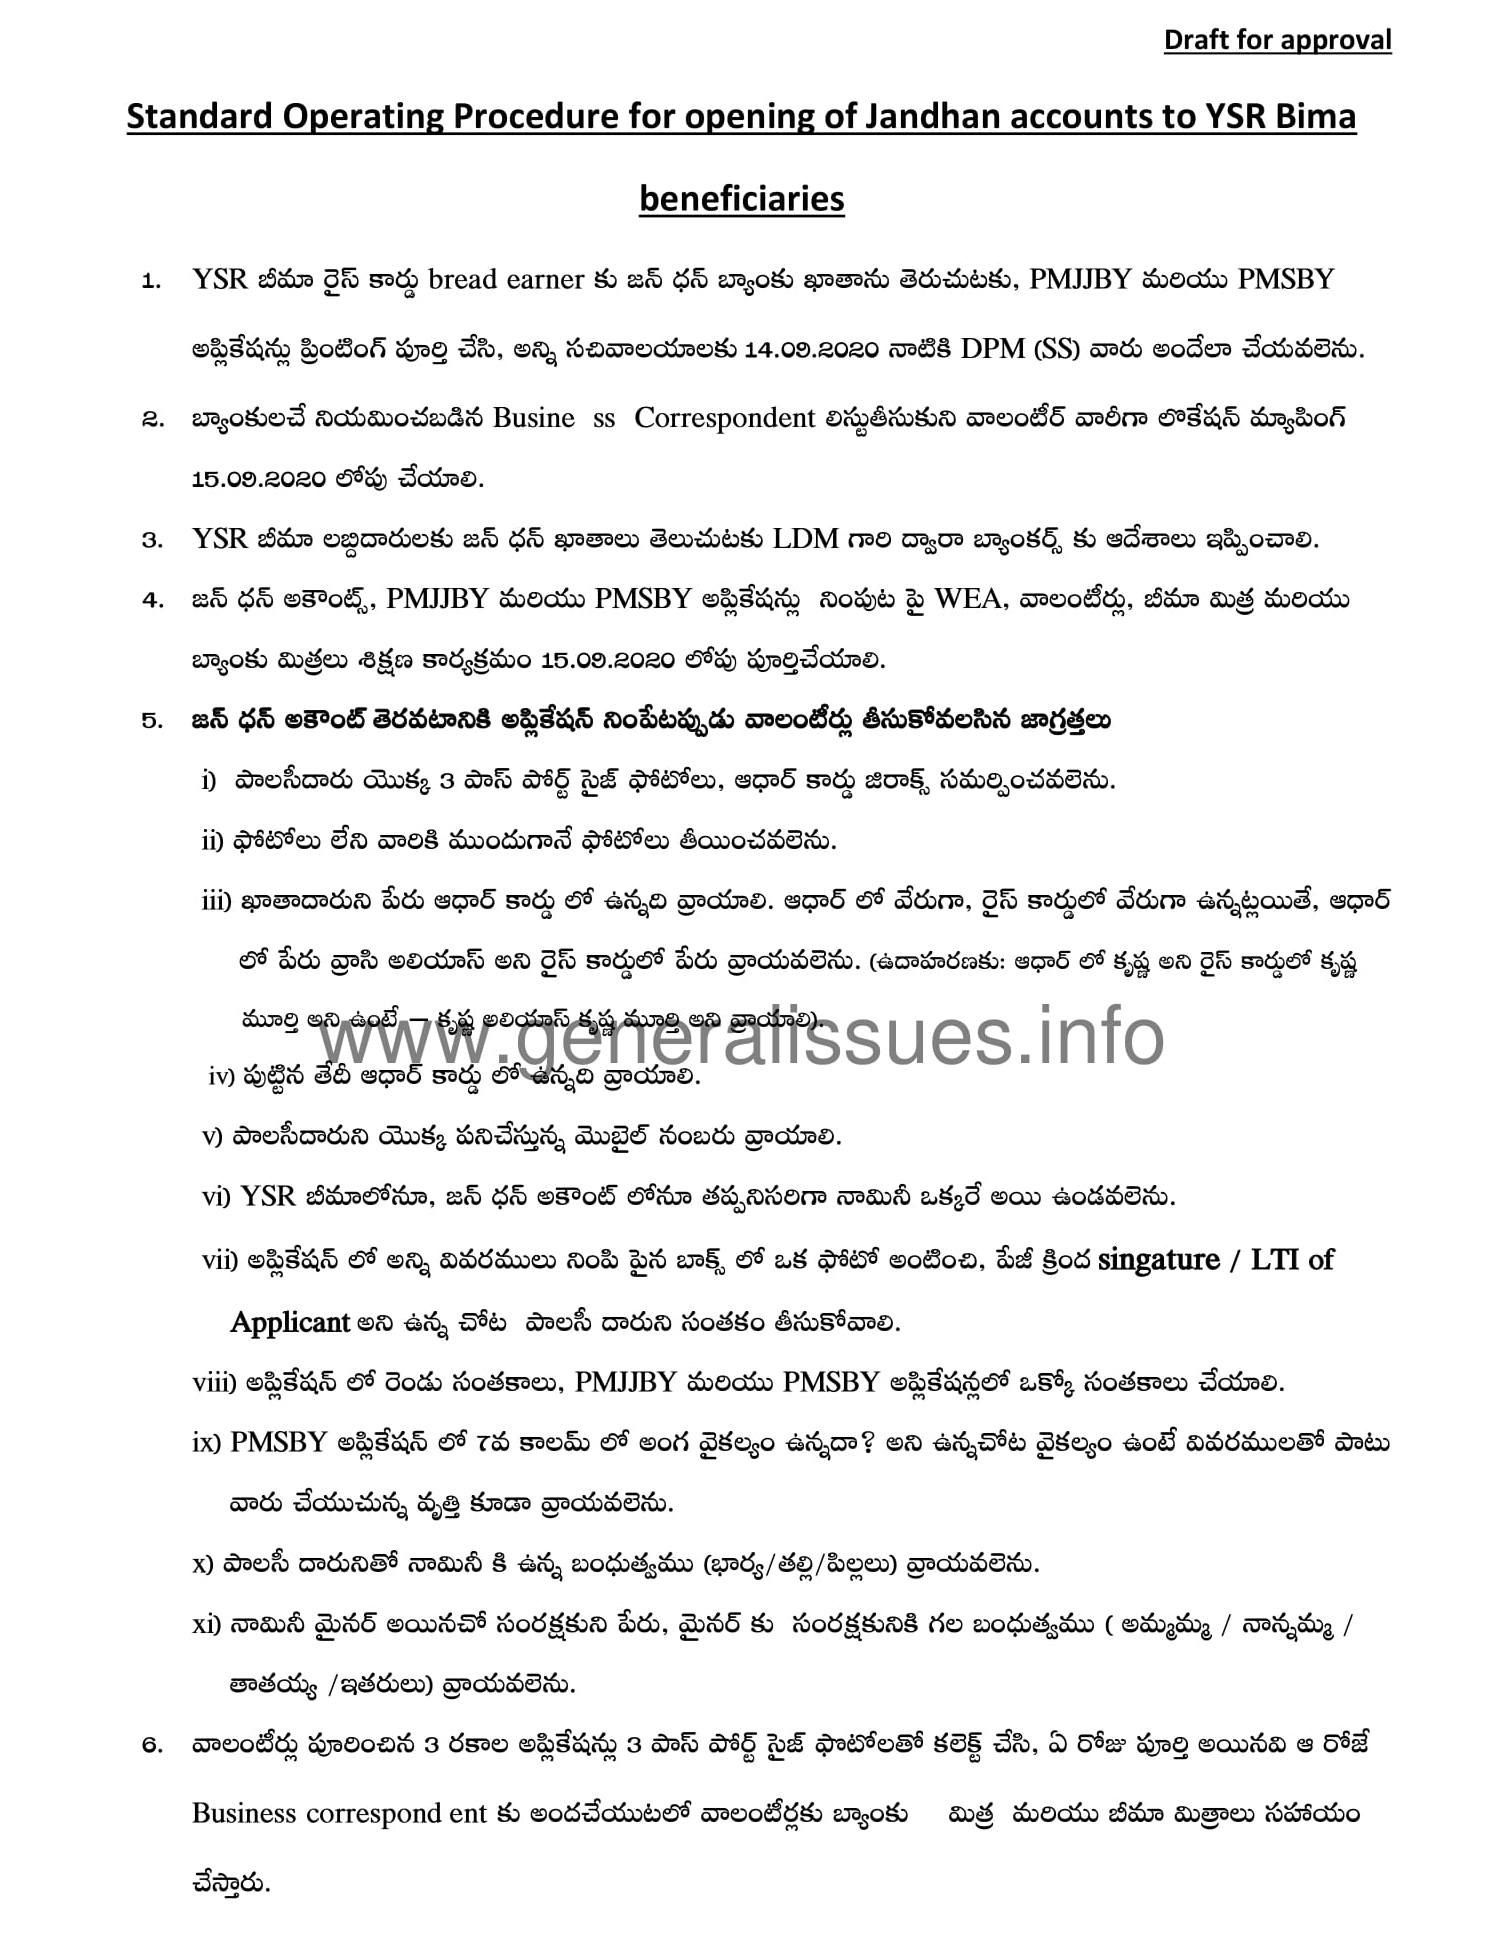 Operating Procedure for opening of Jandhan accounts